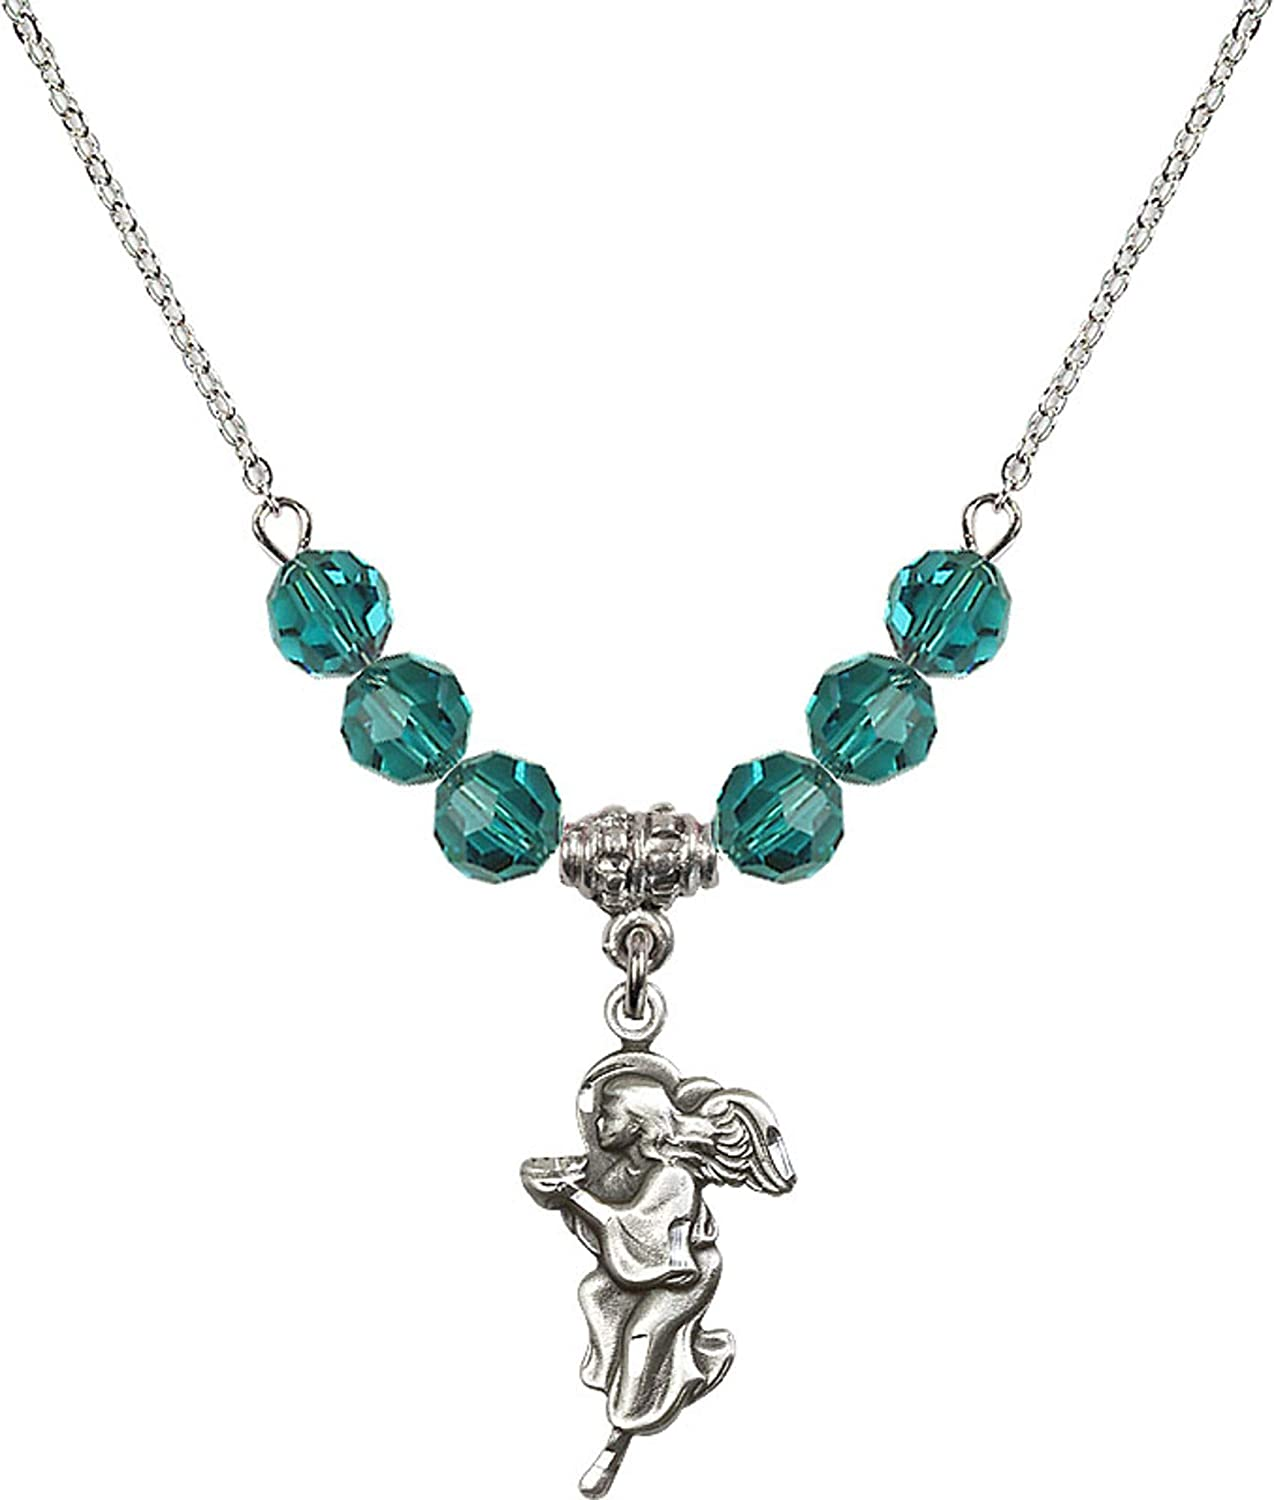 Bonyak Jewelry 18 Inch Rhodium Plated Necklace w// 6mm Blue December Birth Month Stone Beads and Guardian Angel Charm